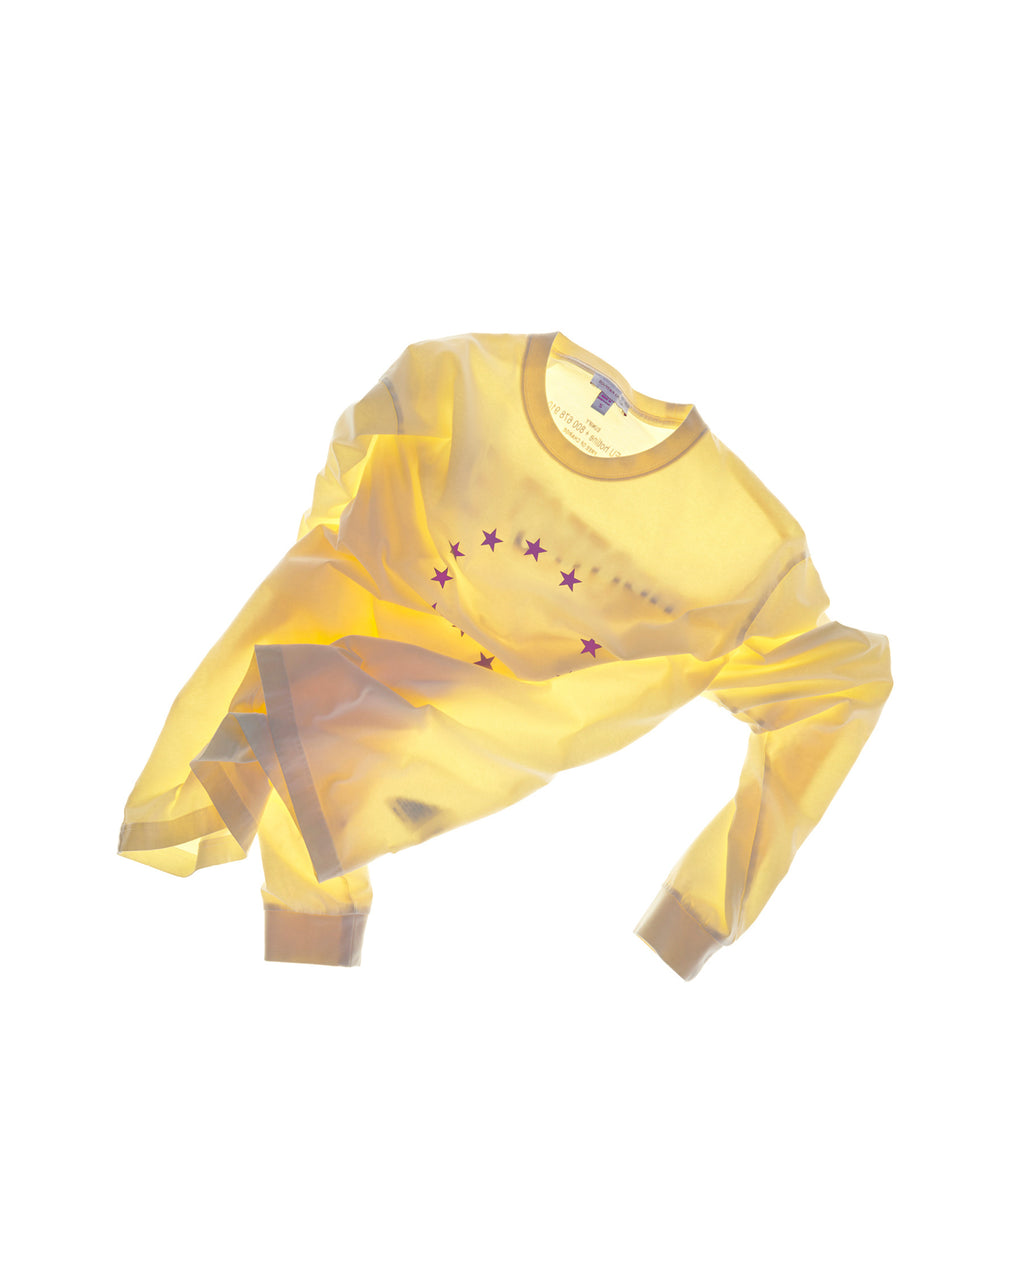 PROTECT PEACE LONGSLEEVE PASTEL YELLOW